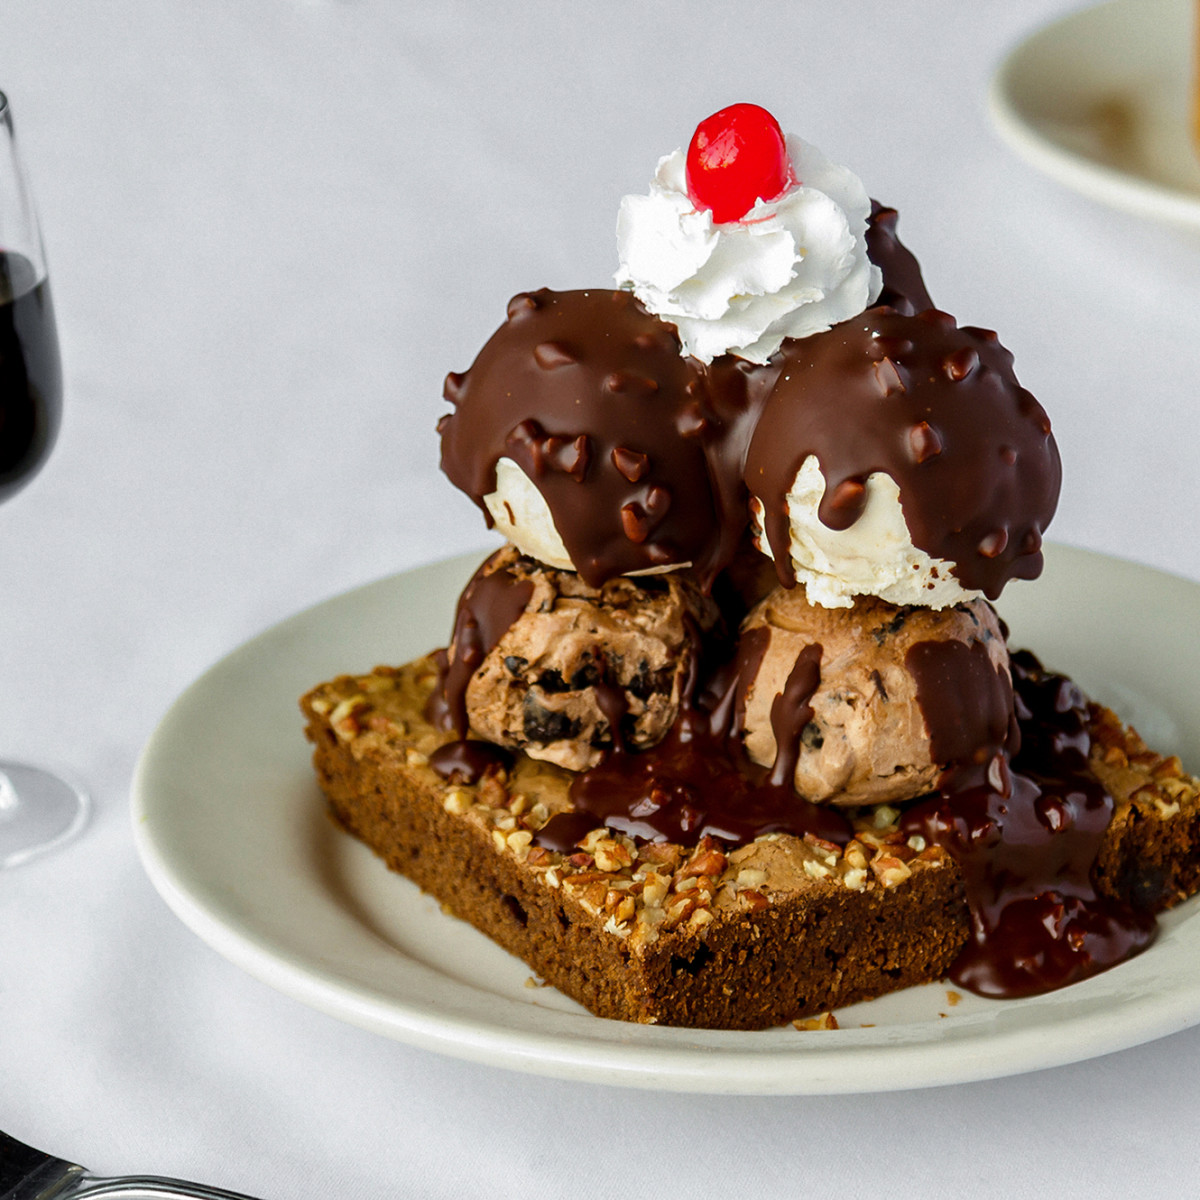 Bob's Steak and Chop House brownie sundae